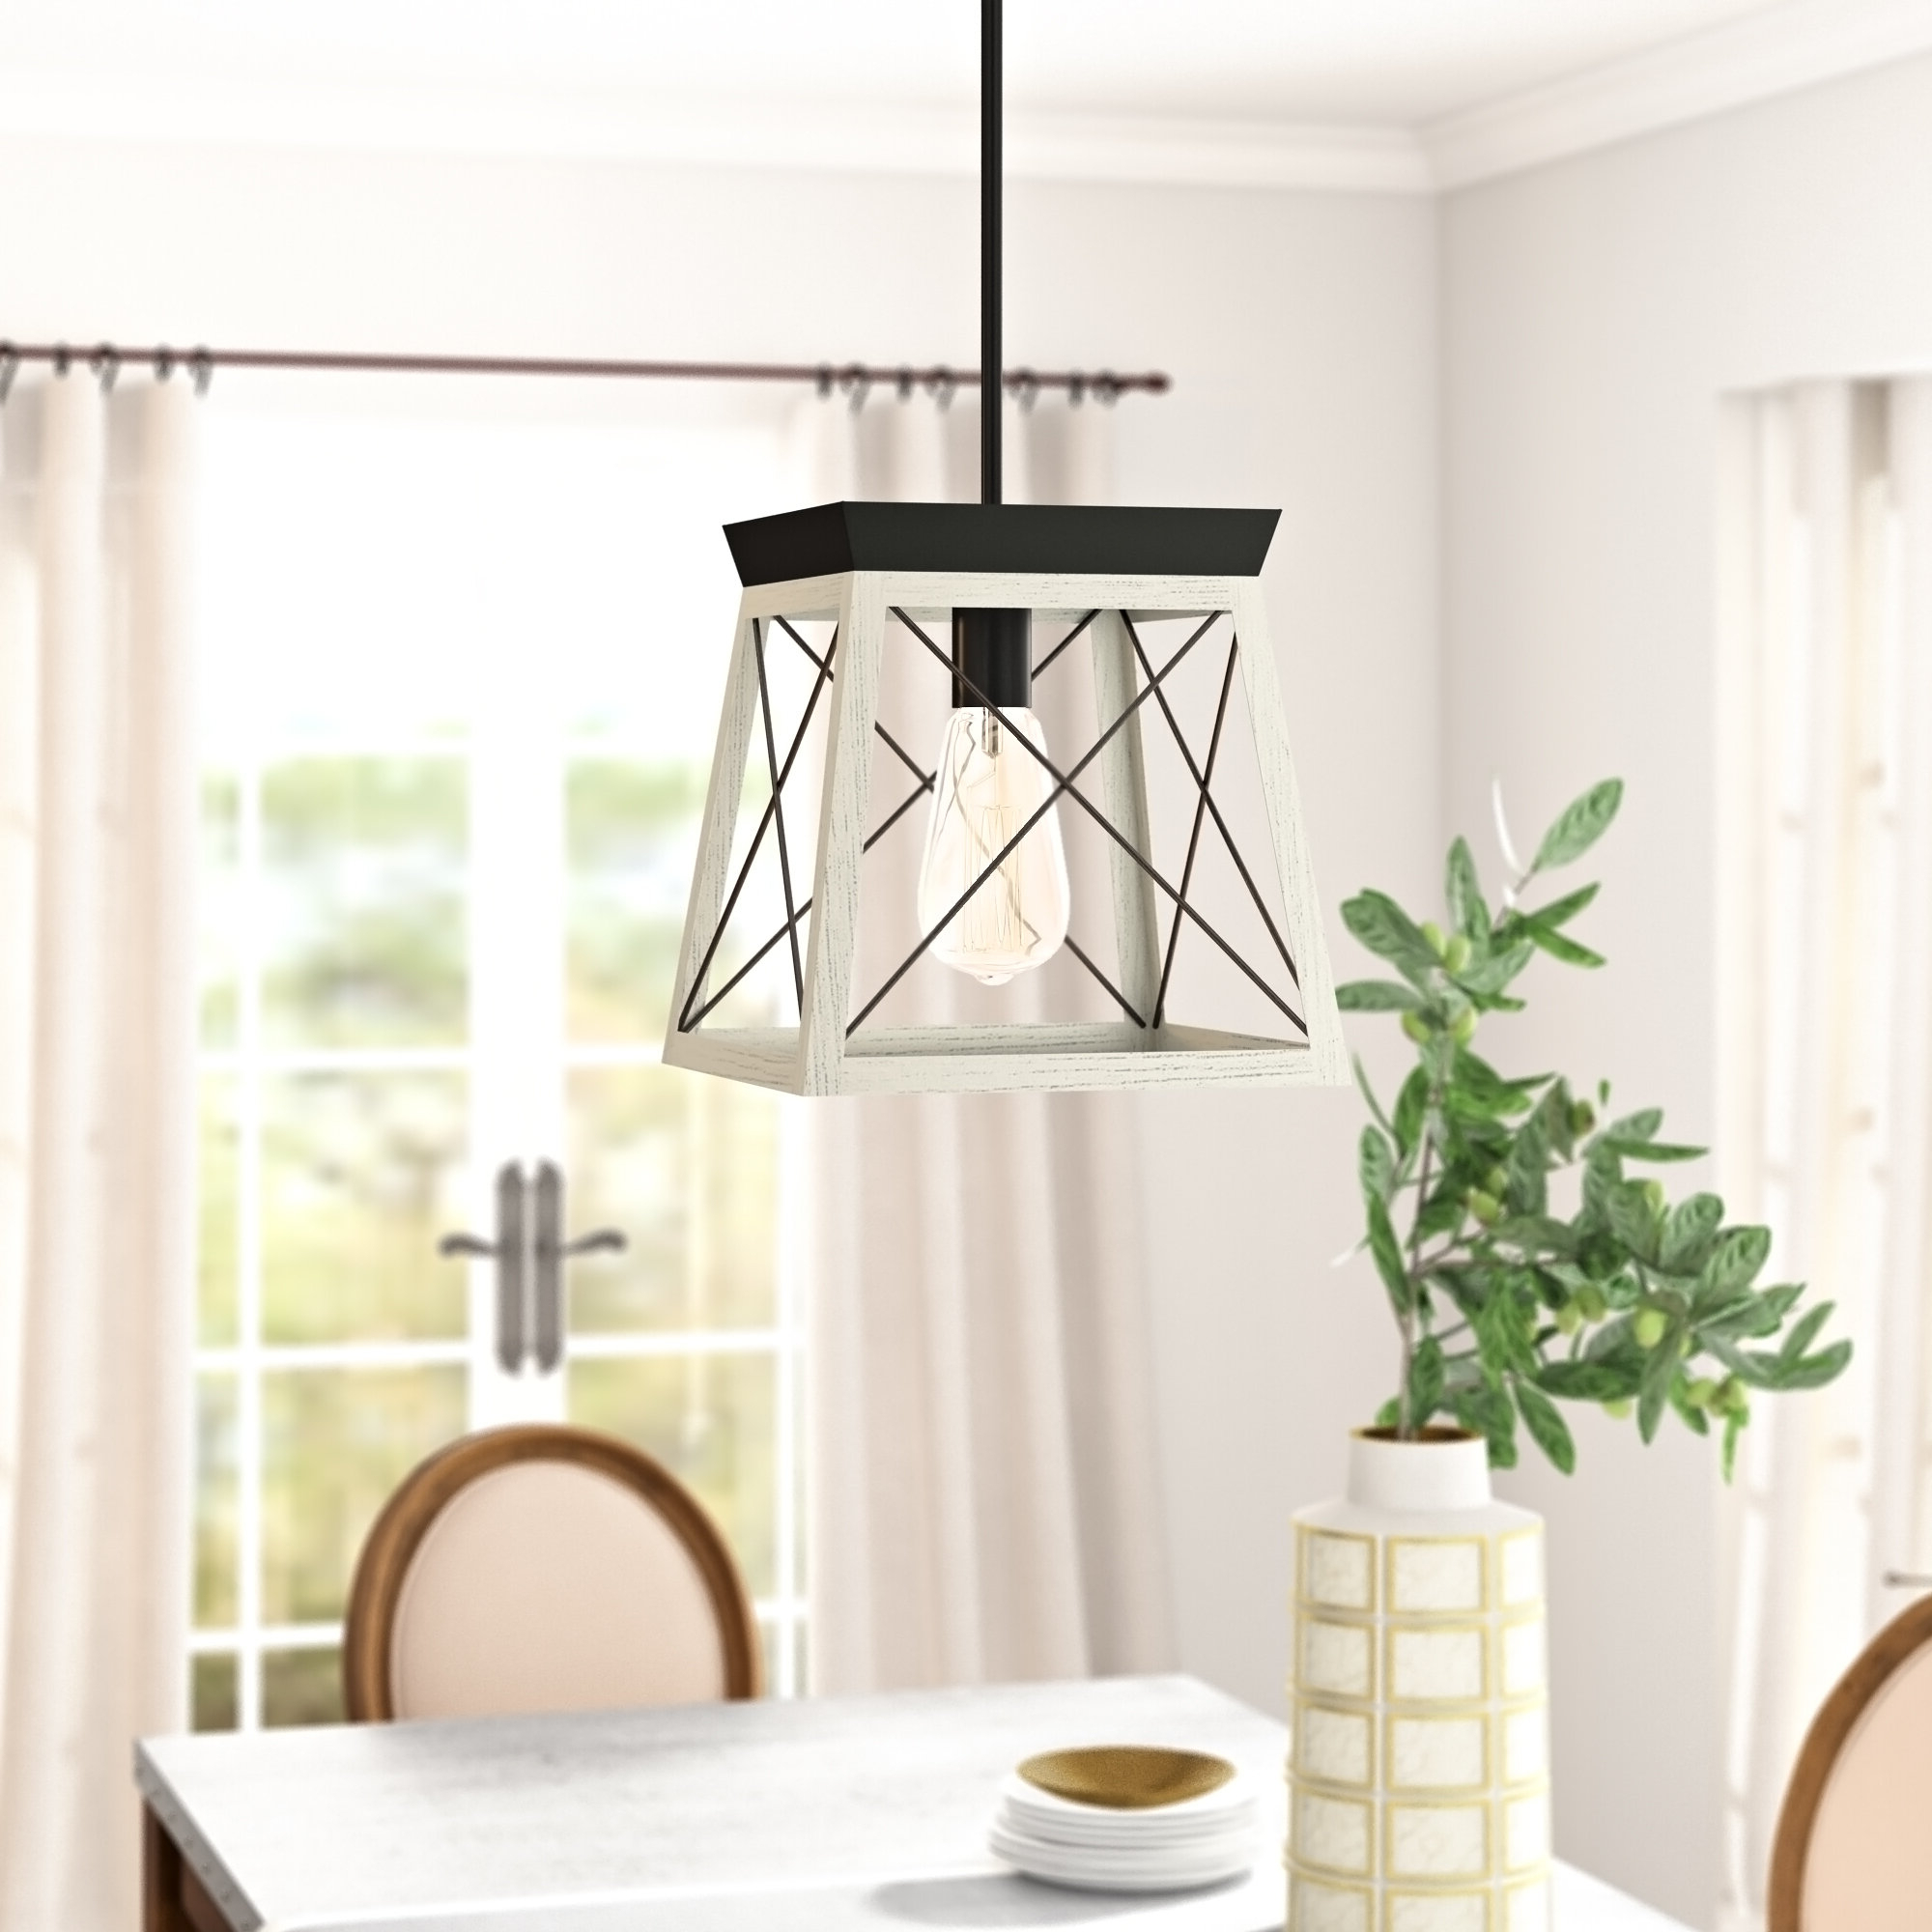 Fashionable Louanne 3 Light Lantern Geometric Pendants Inside Delon 1 Light Lantern Geometric Pendant (View 8 of 25)